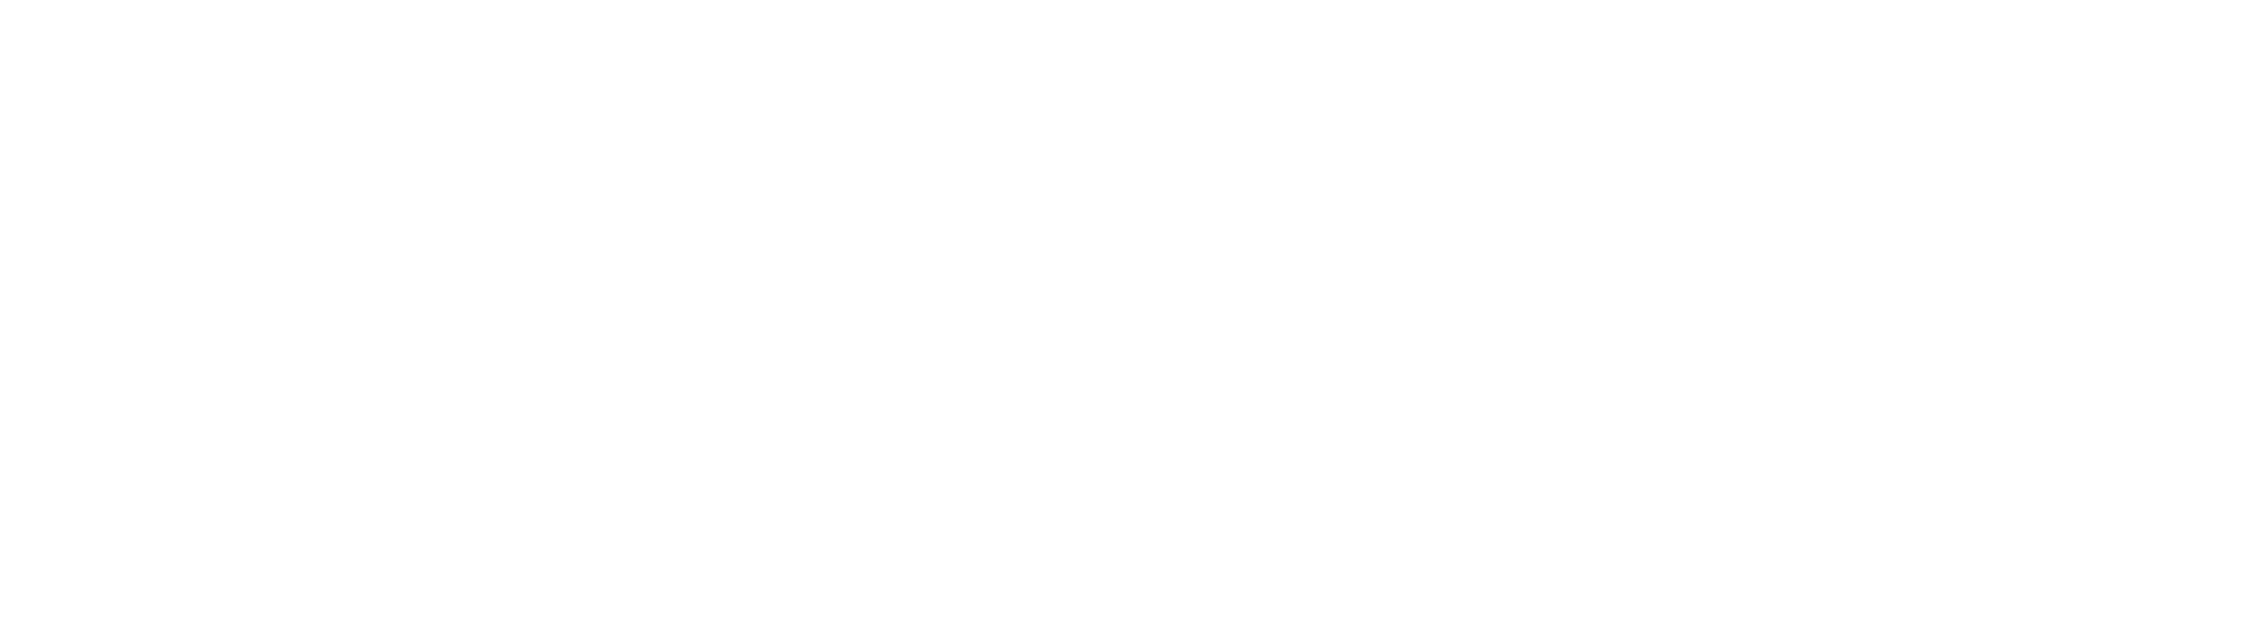 First Rehab and Sport Physical Therapy Logo White